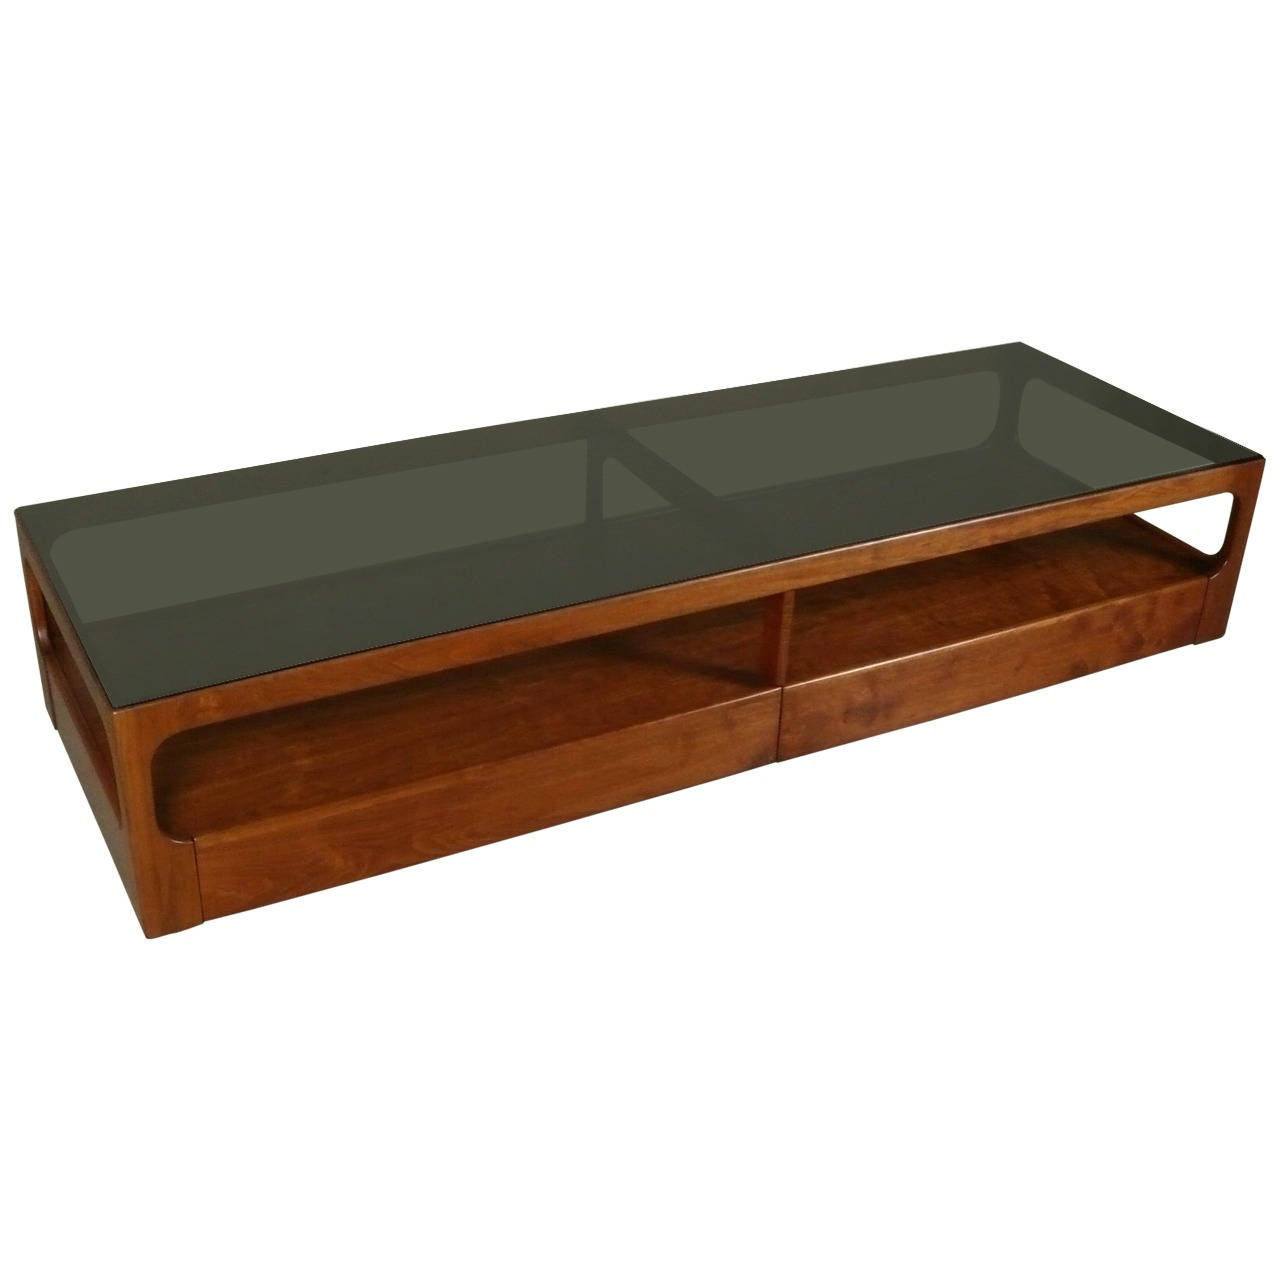 Walnut And Smoked Glass Coffee Table By John Keal For Brown Saltman At 1stdibs